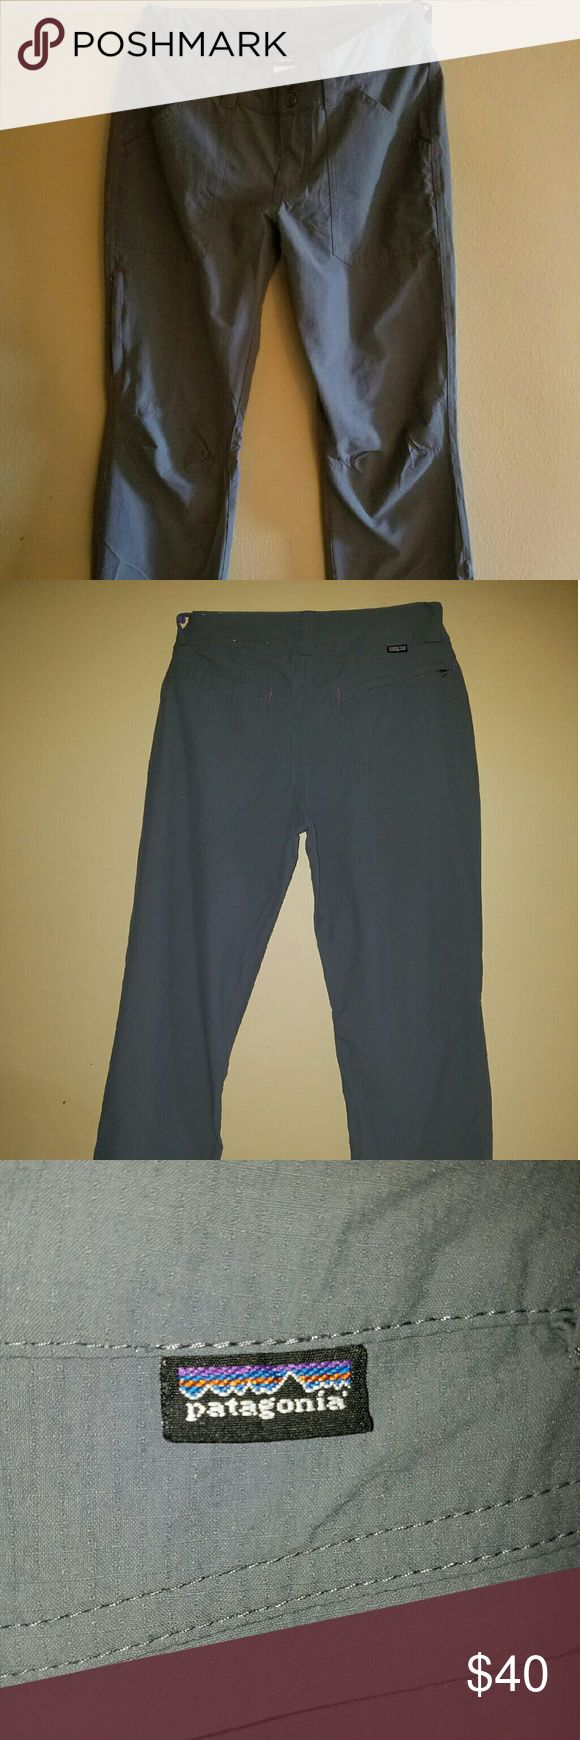 Patagonia Lightweight Pants Gray lightweight Patagonia Pants. Size 2. Great condition. Patagonia Pants Track Pants & Joggers